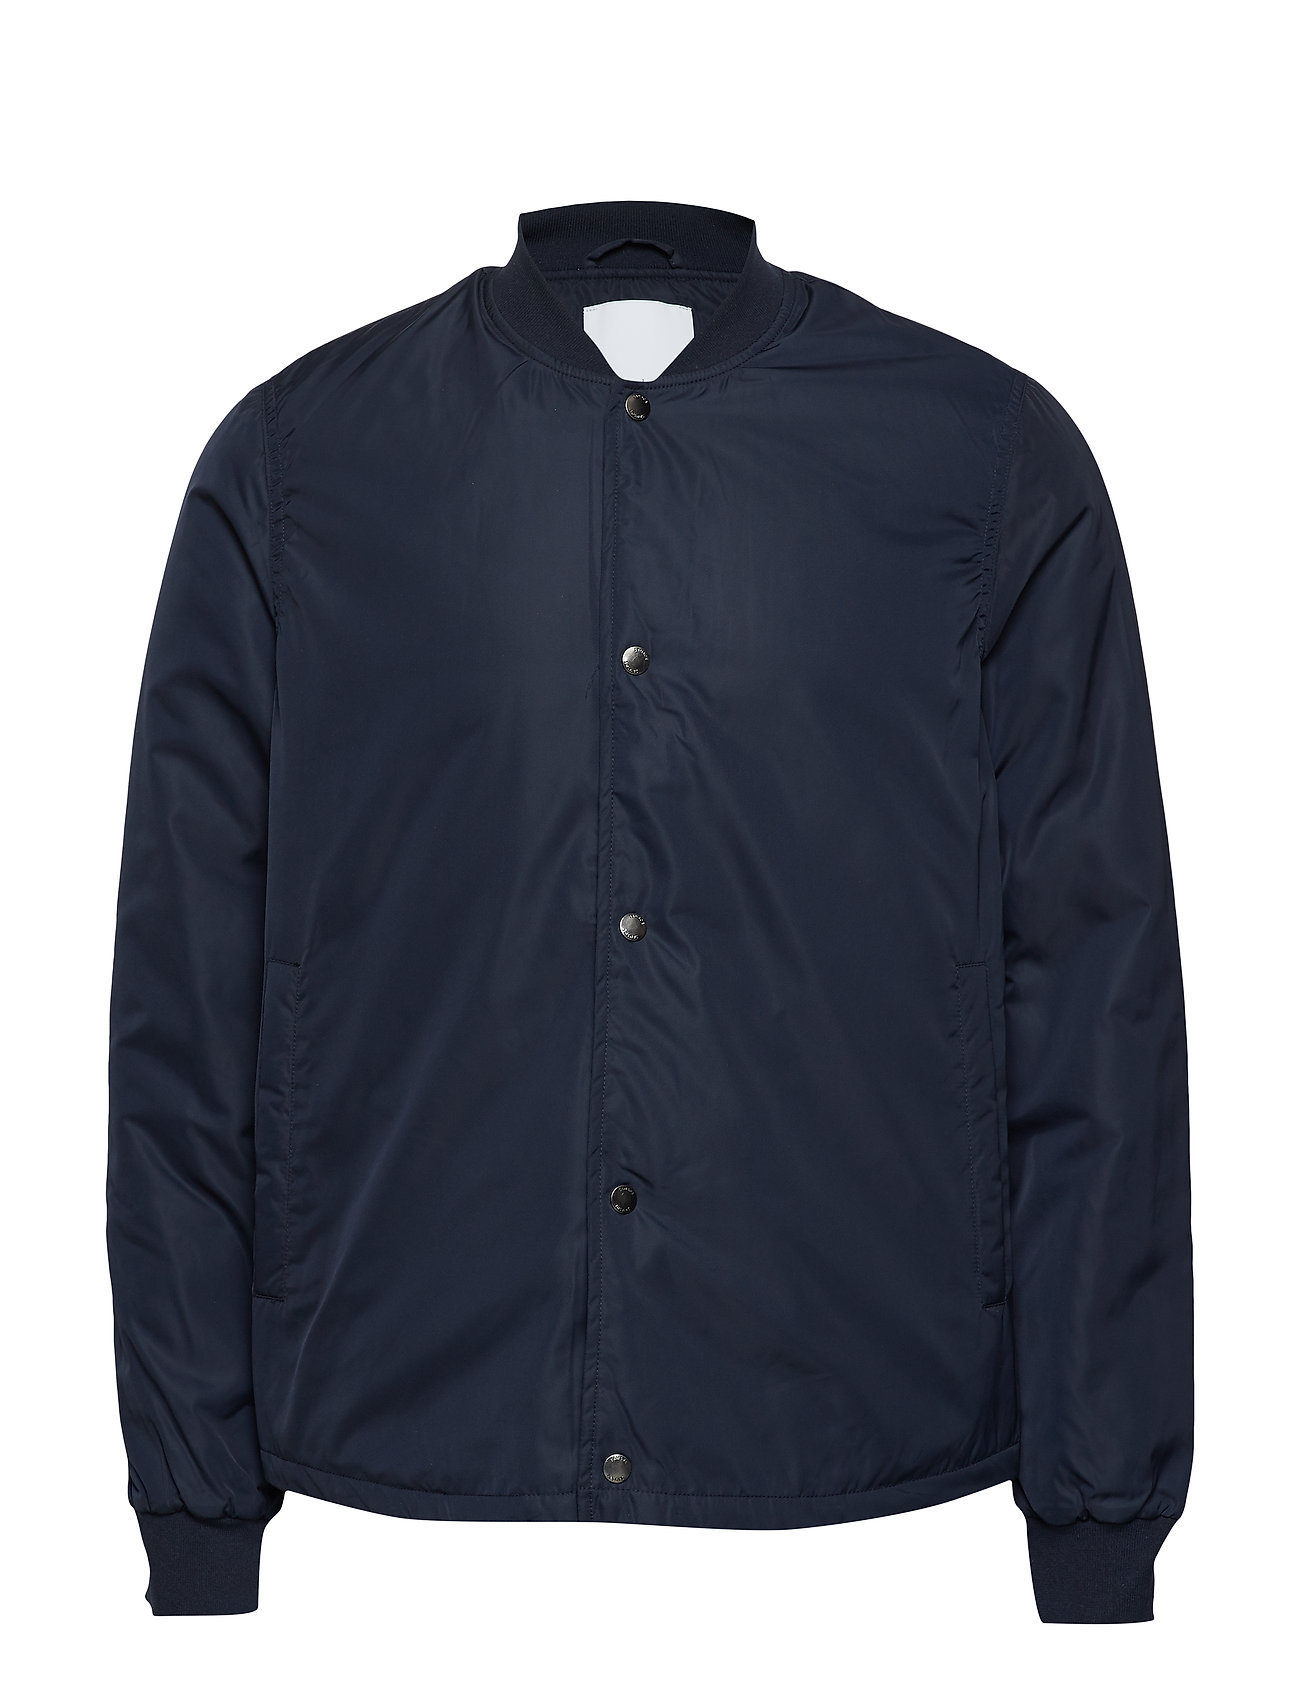 Samsøe & Samsøe Gles jacket 10917 - NIGHT SKY